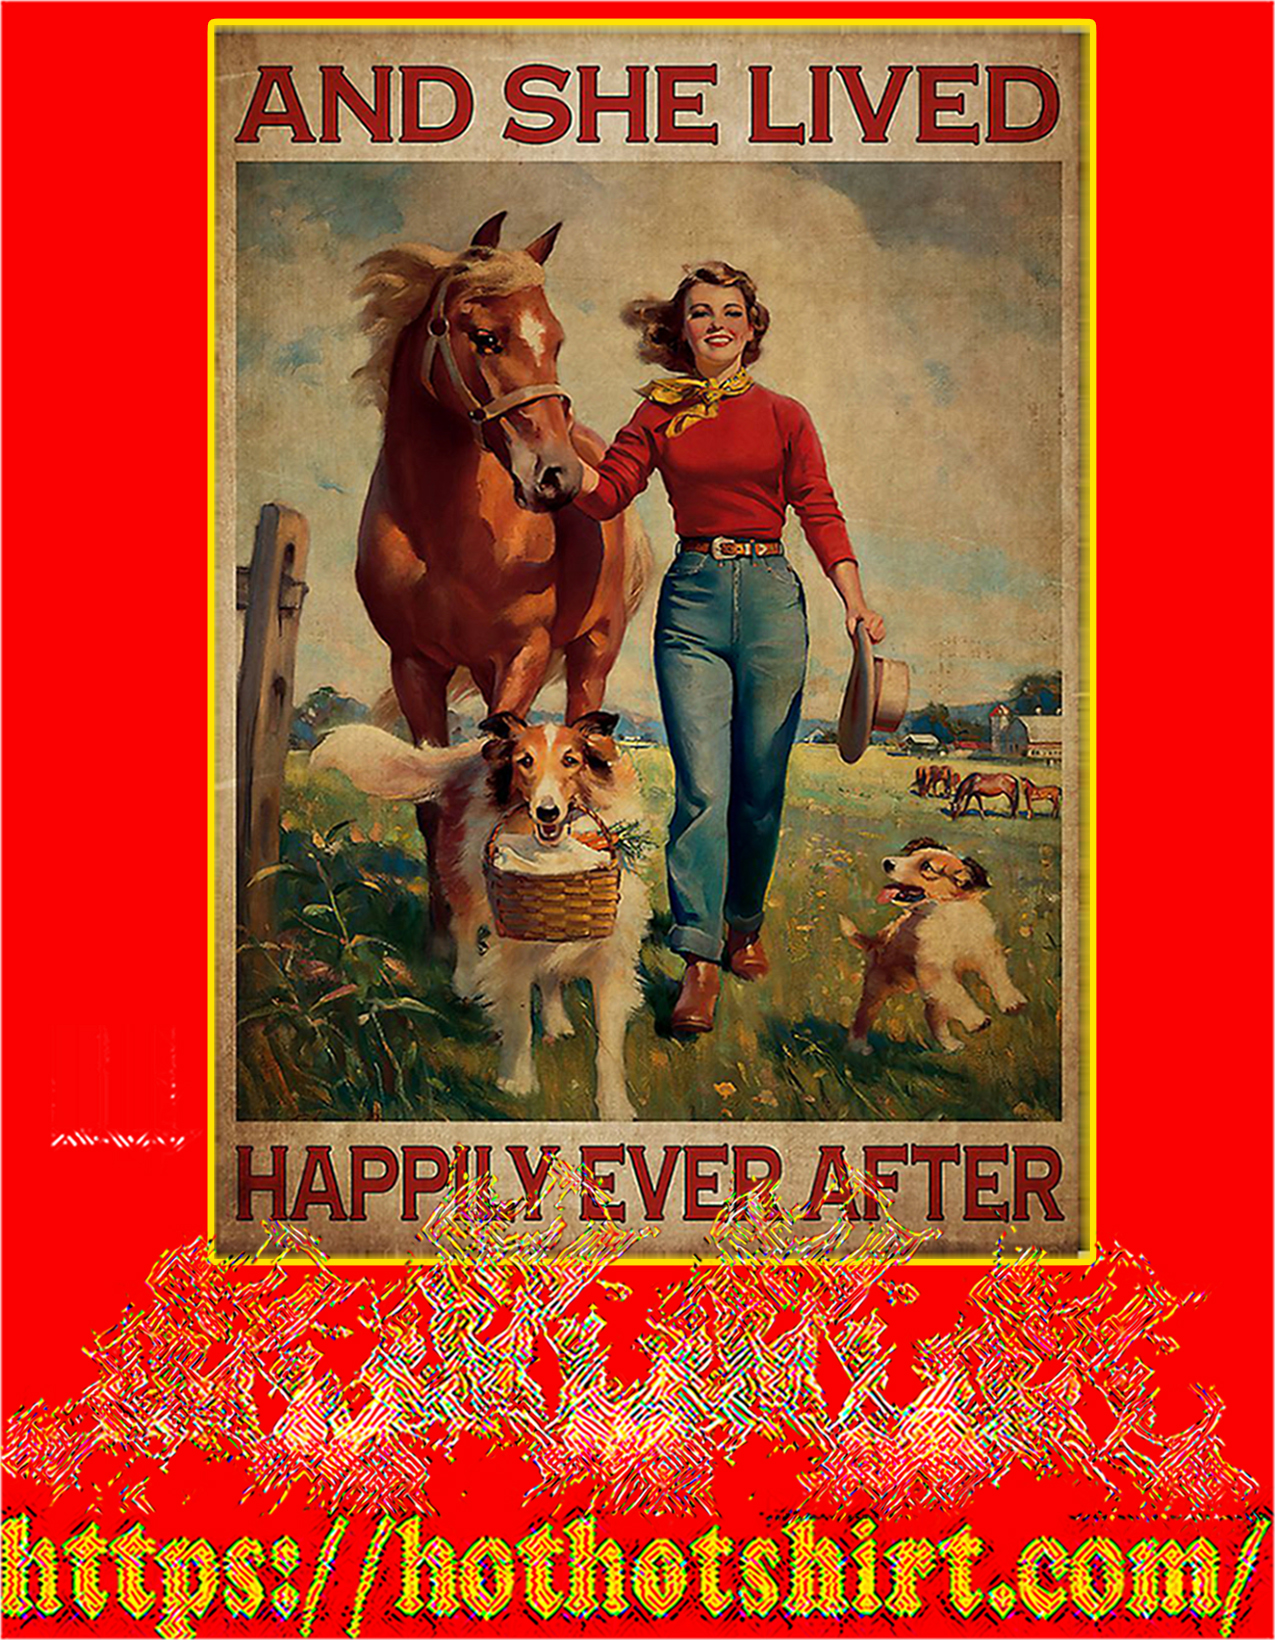 And she lived happily ever after horse and dog poster - A2